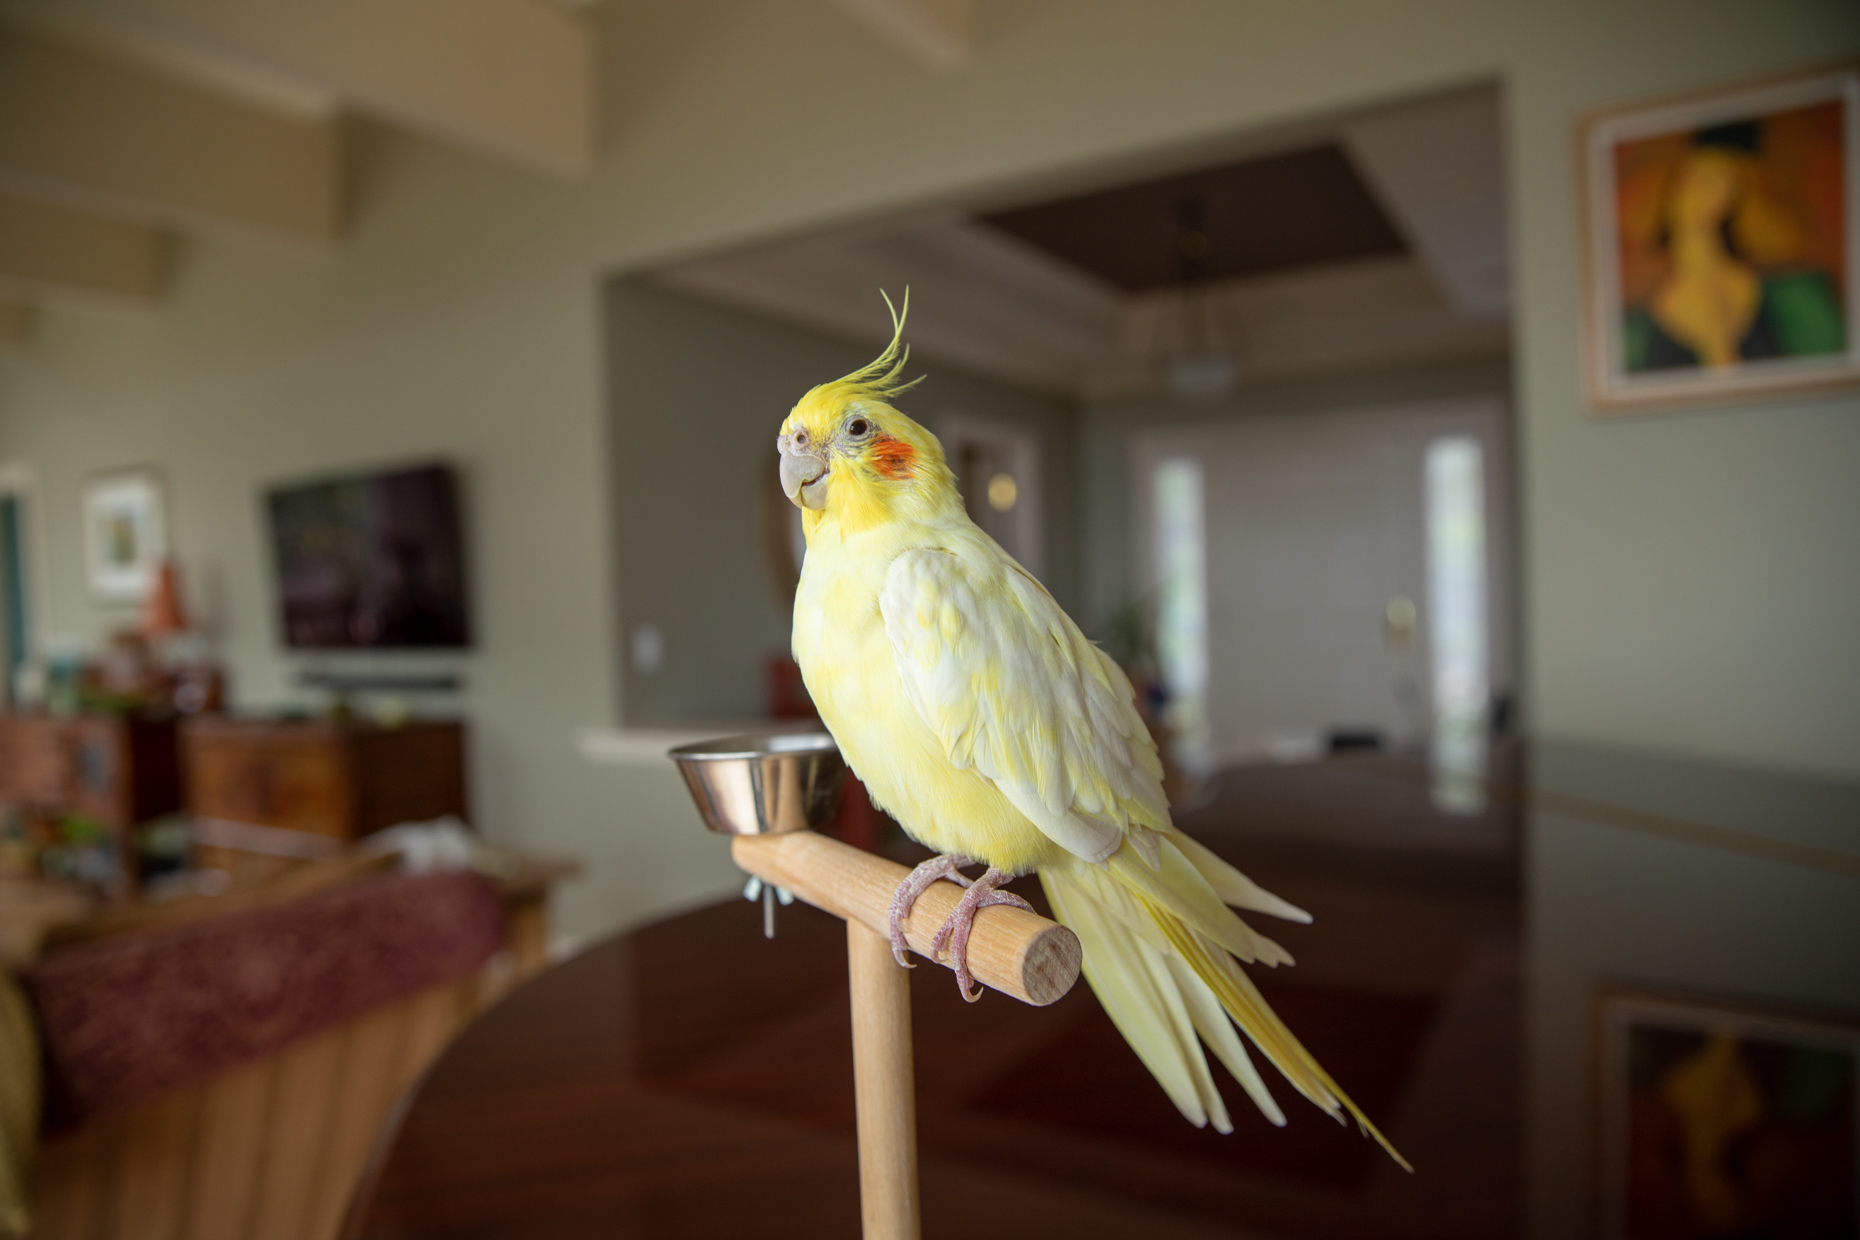 Pet and Bird Photography | Yellow Cockatiel in Room by Mark Rogers